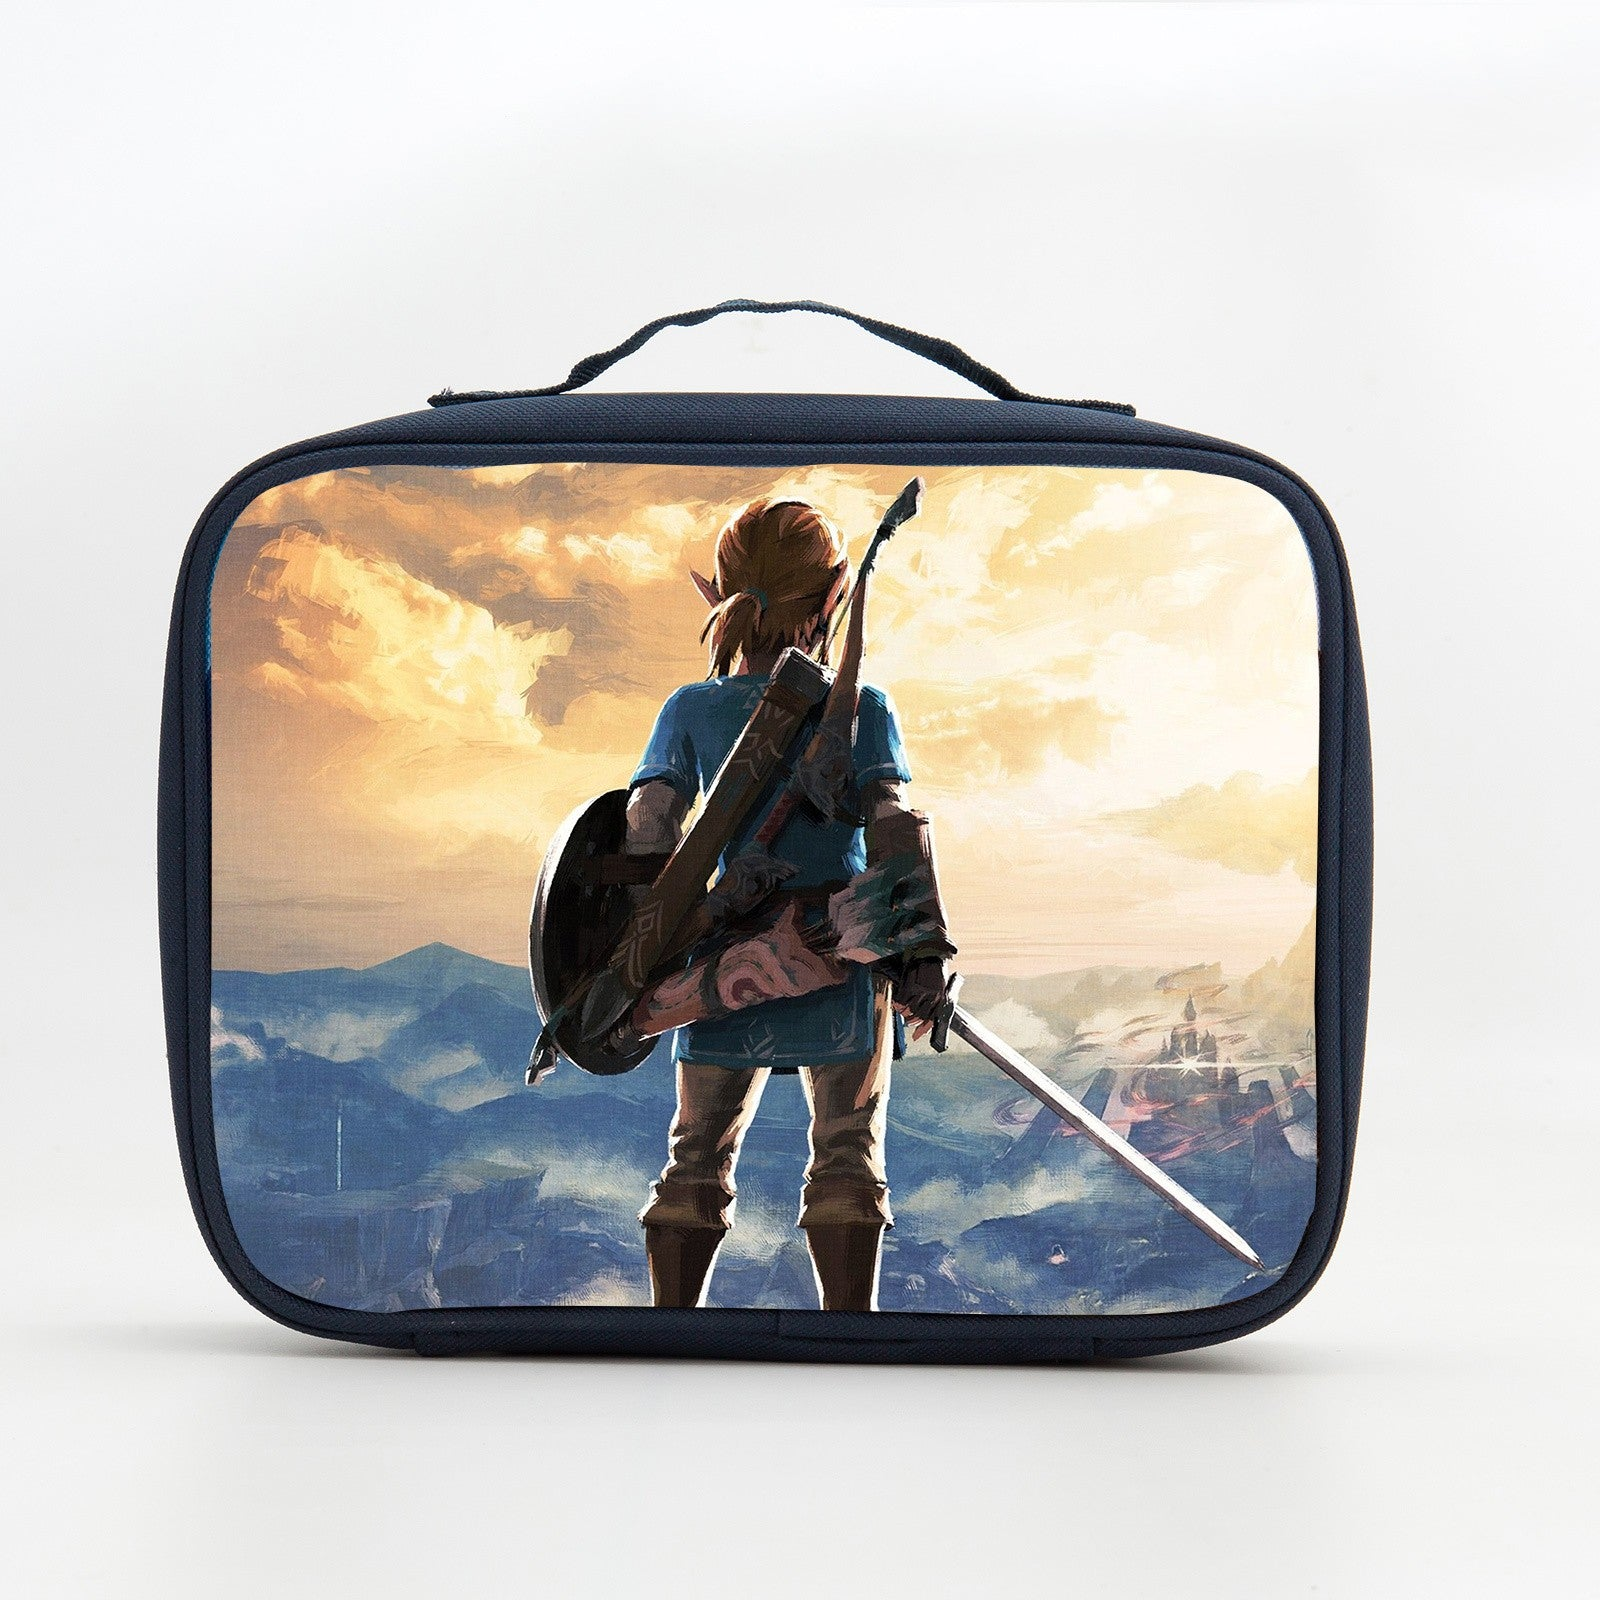 The Legend of Zelda Breath of the Wild High Capacity Insulated Lunch Box